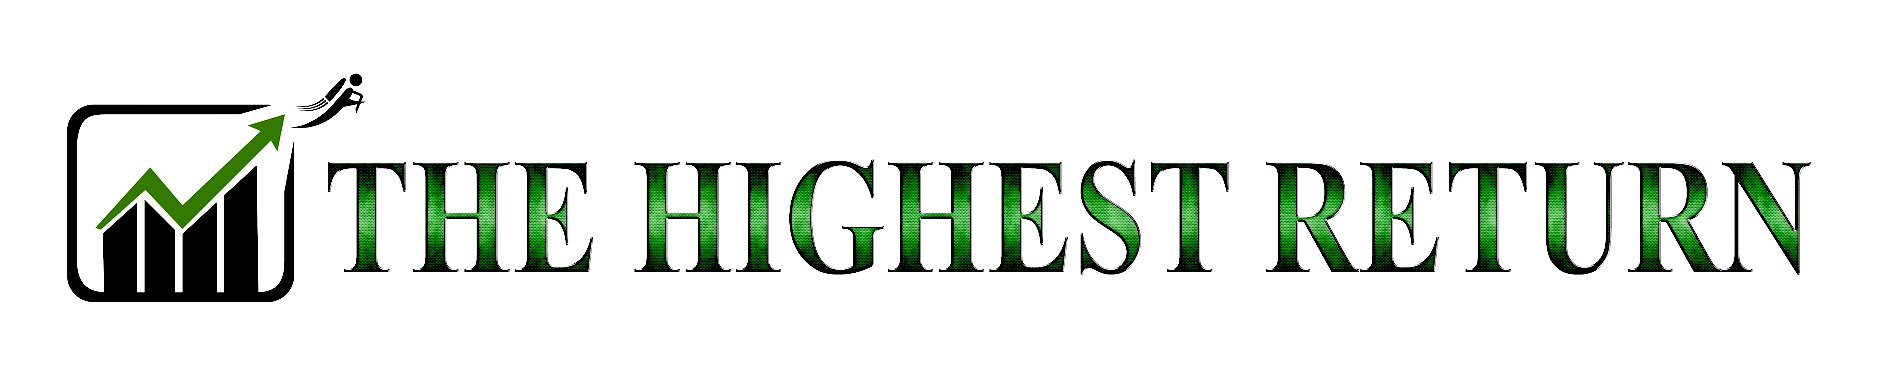 The Highest Return Logo